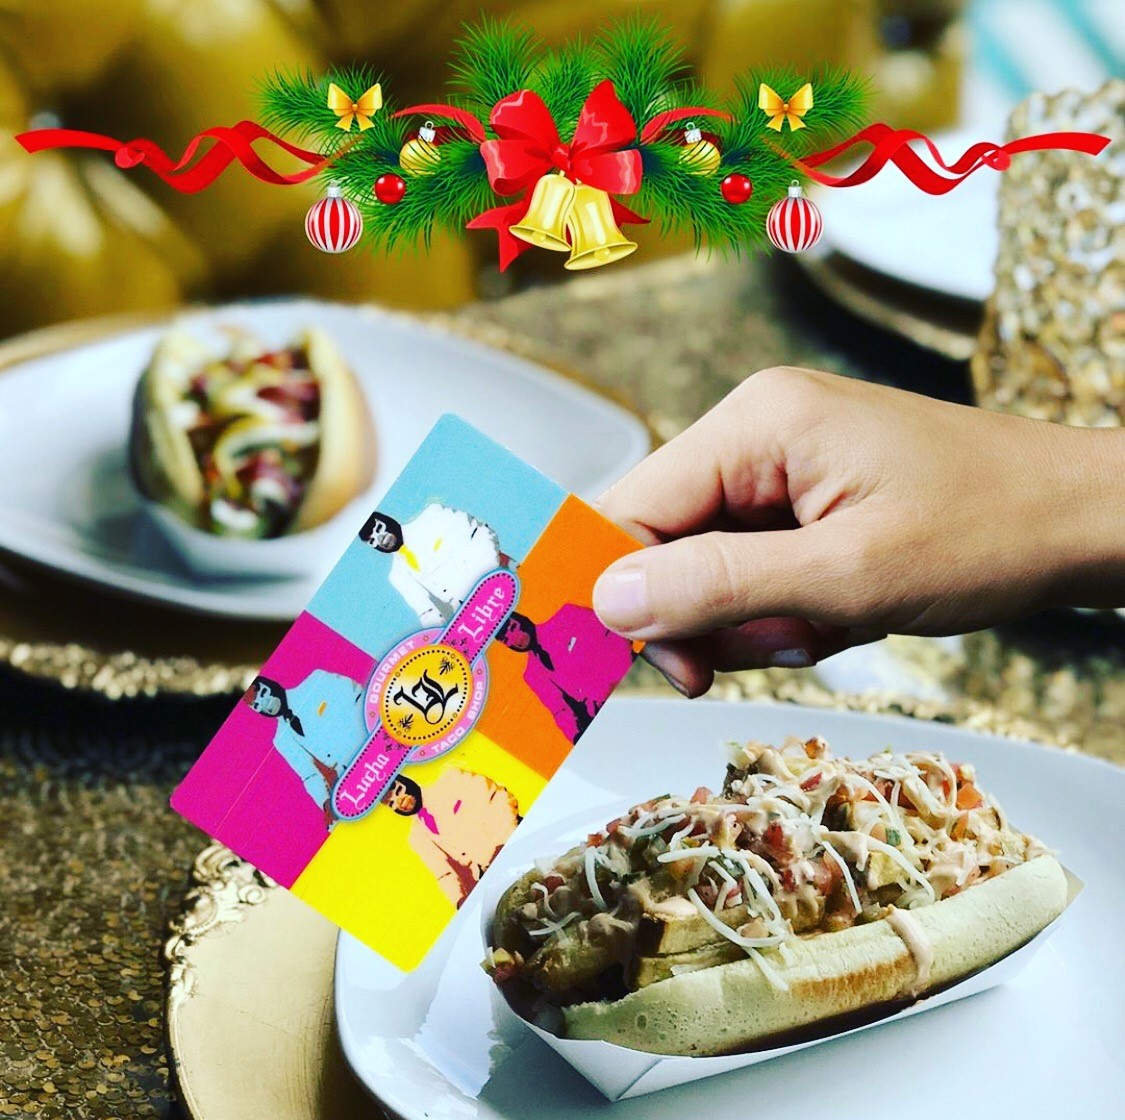 Free TJ Menu Item with Gift Card Purchase! from Lucha Libre Taco Shop